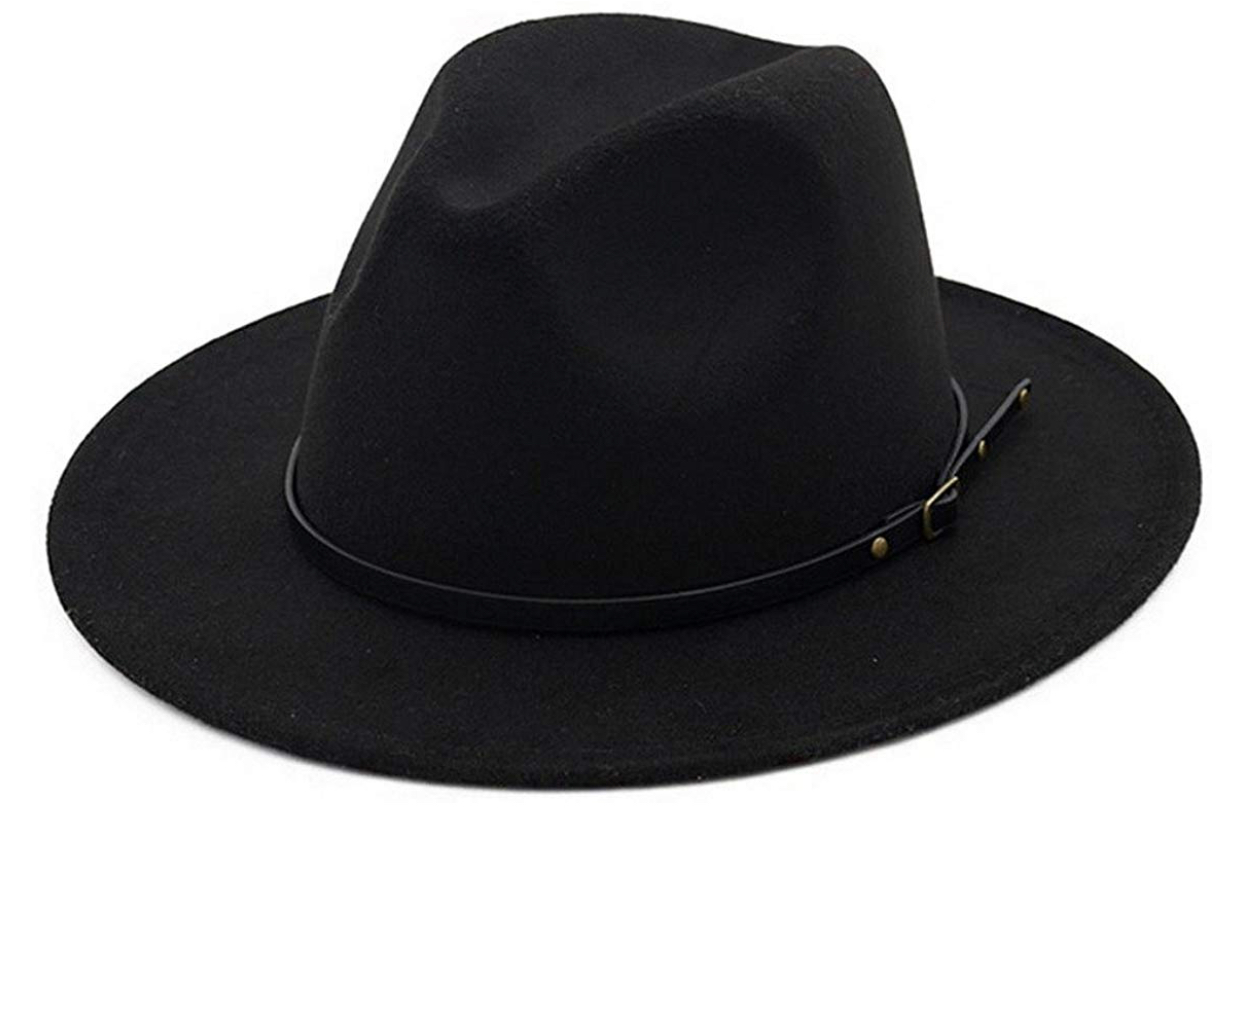 The Best Amazon Basics, the best wardrobe basics from Amazon, wool fedora hat